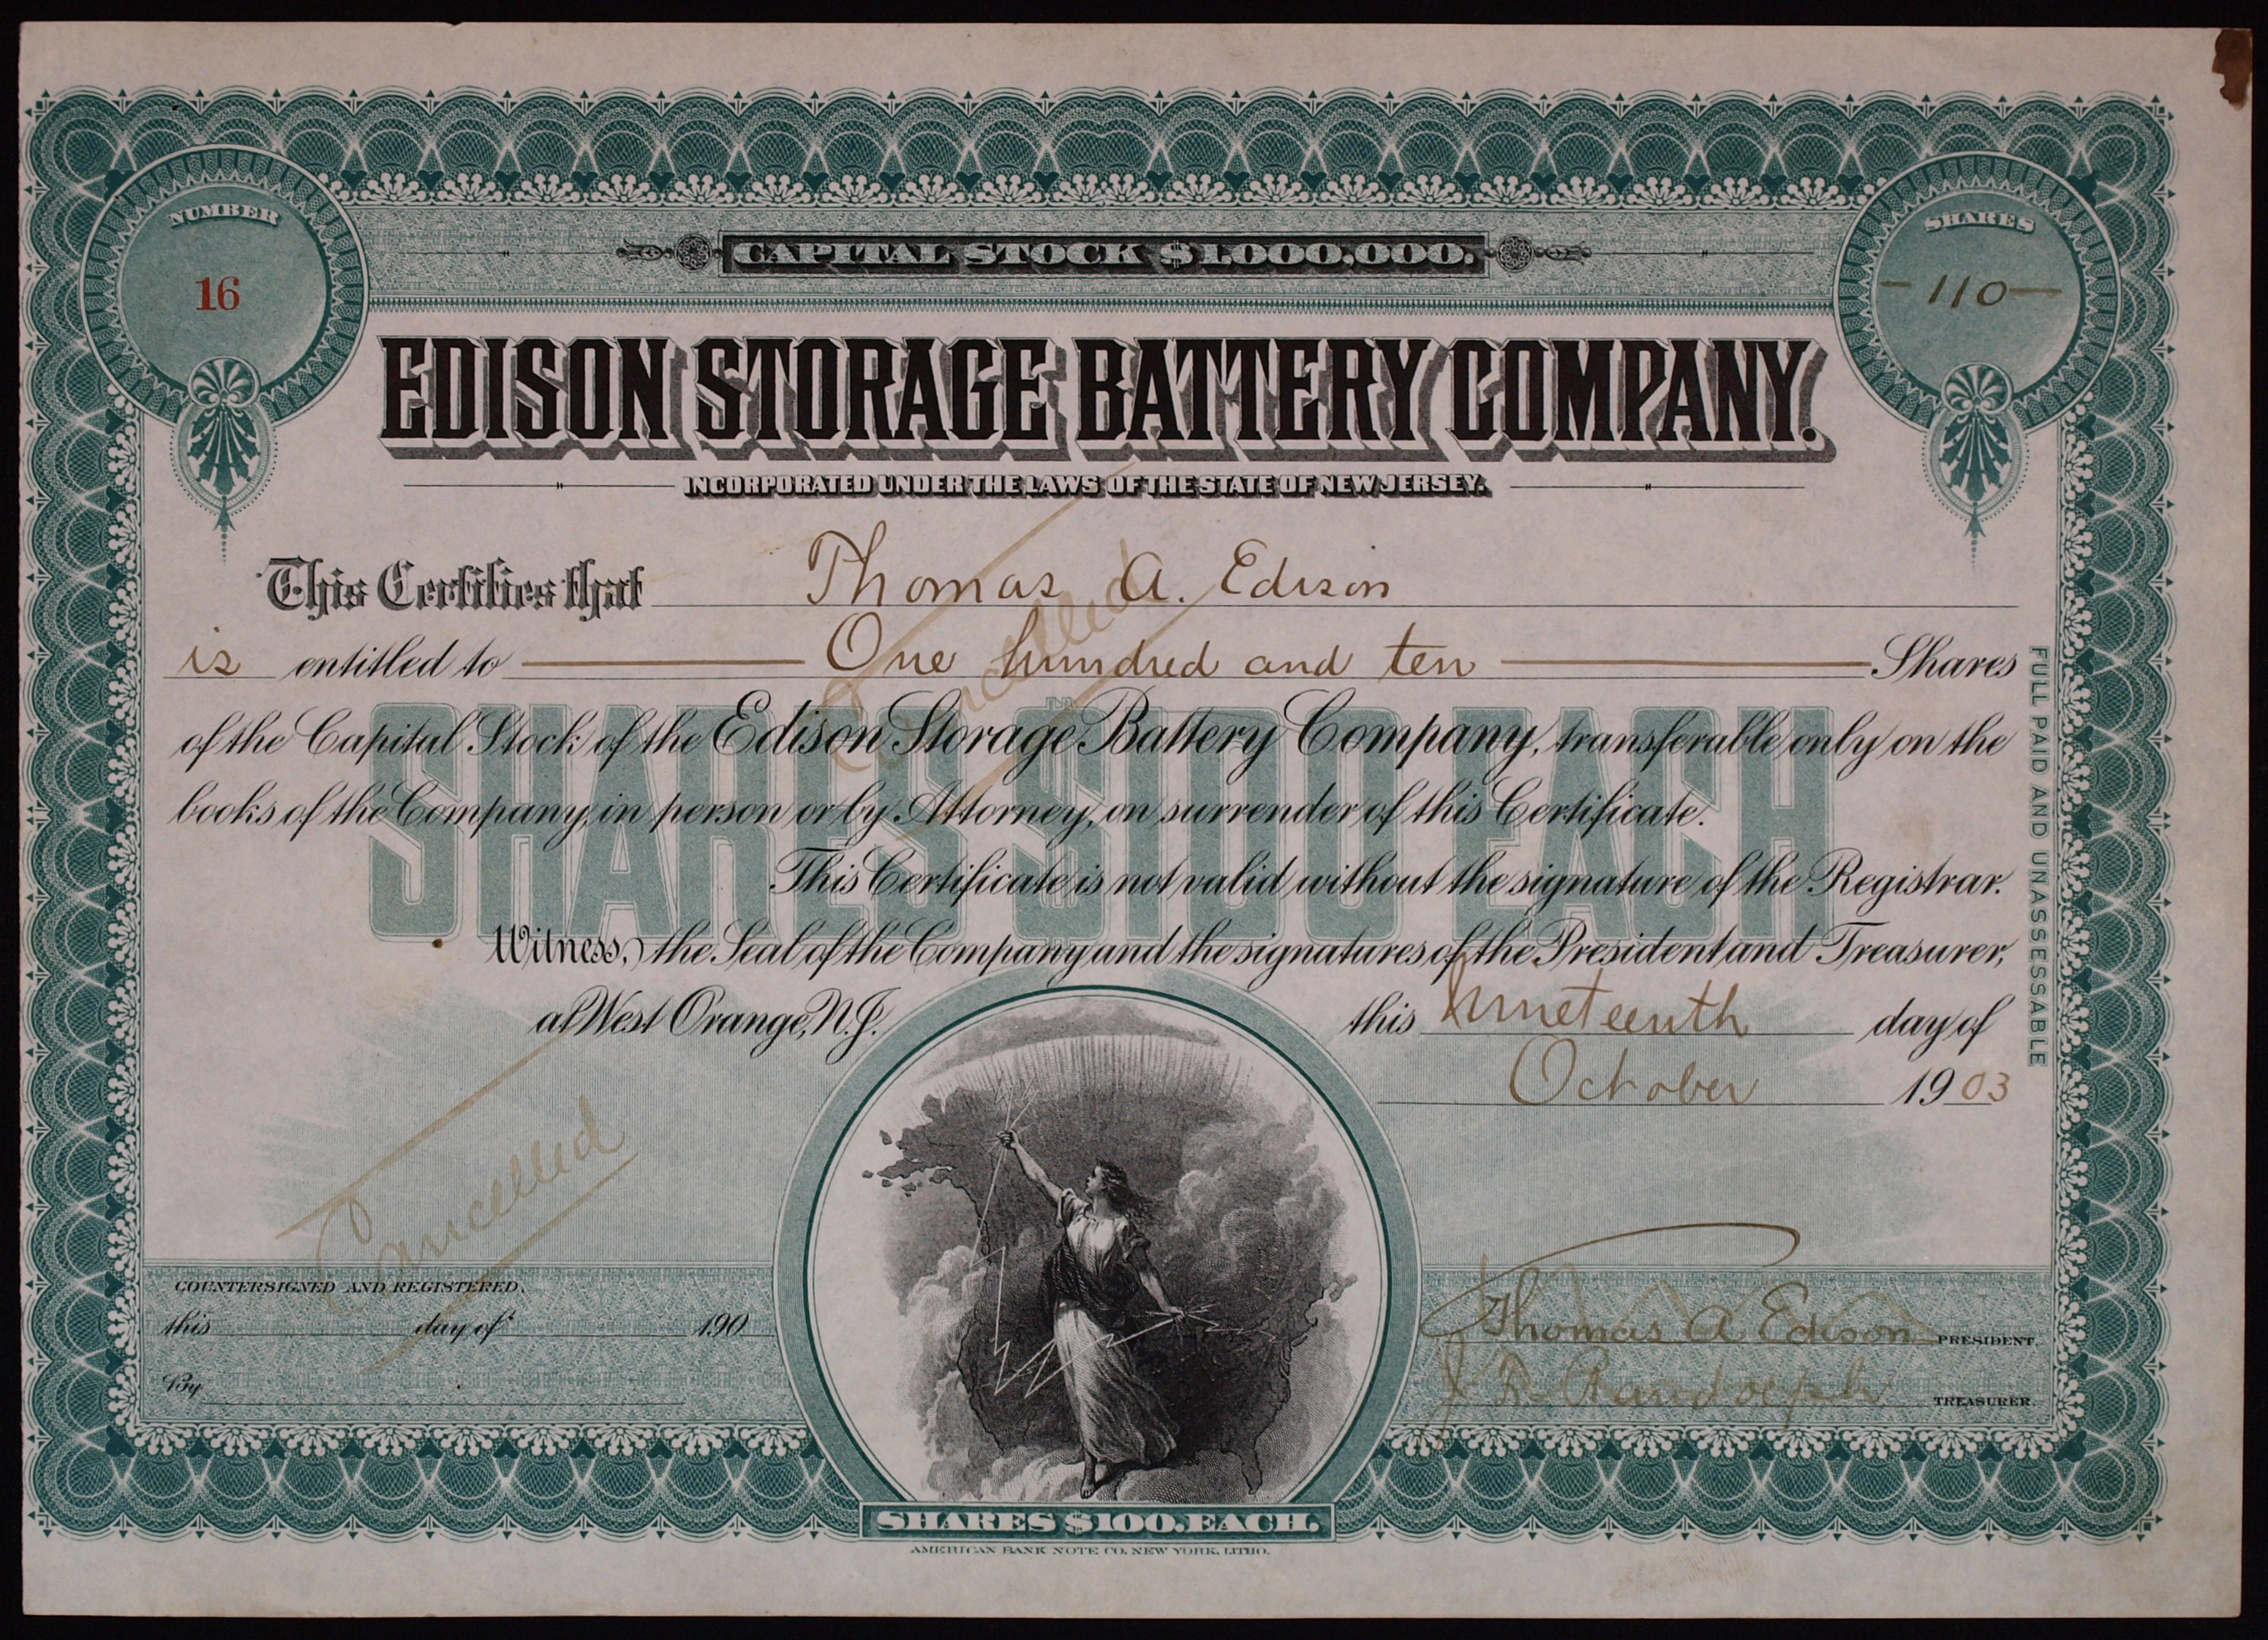 Share of the Edison Storage Battery Company, issued October 19, 1903